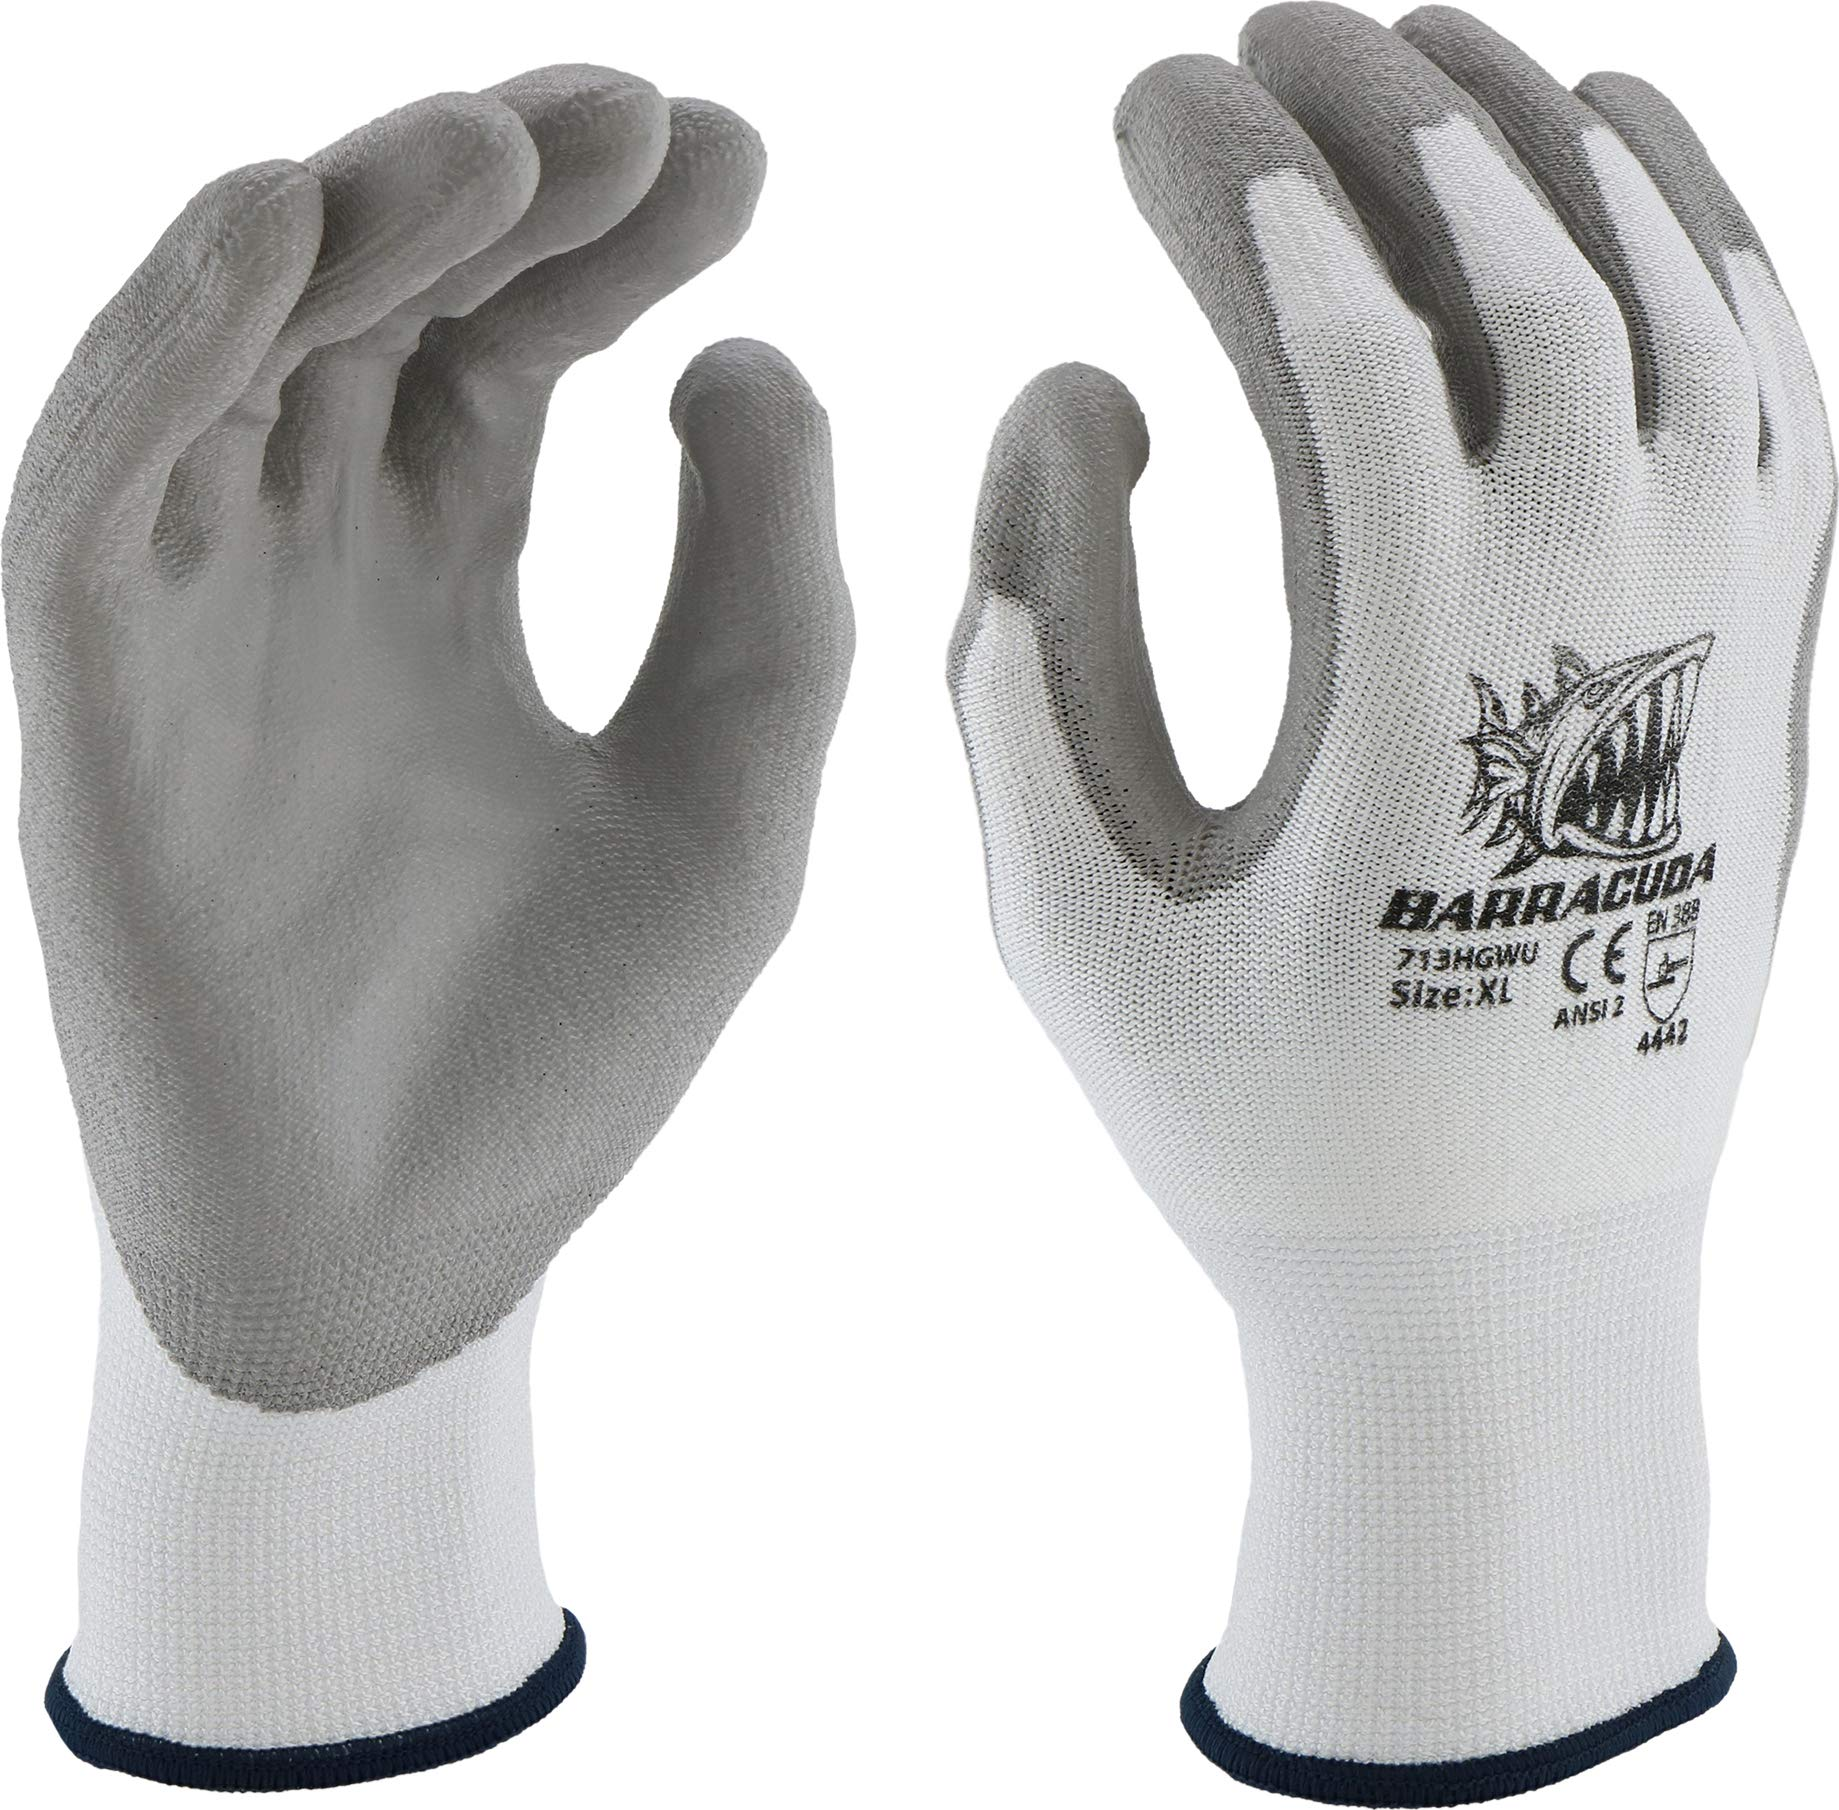 West Chester 713HGWU XL Barracuda White HPPE Shell with Grey PU Dip Cut Protection Gloves, XL (Pack of 12)